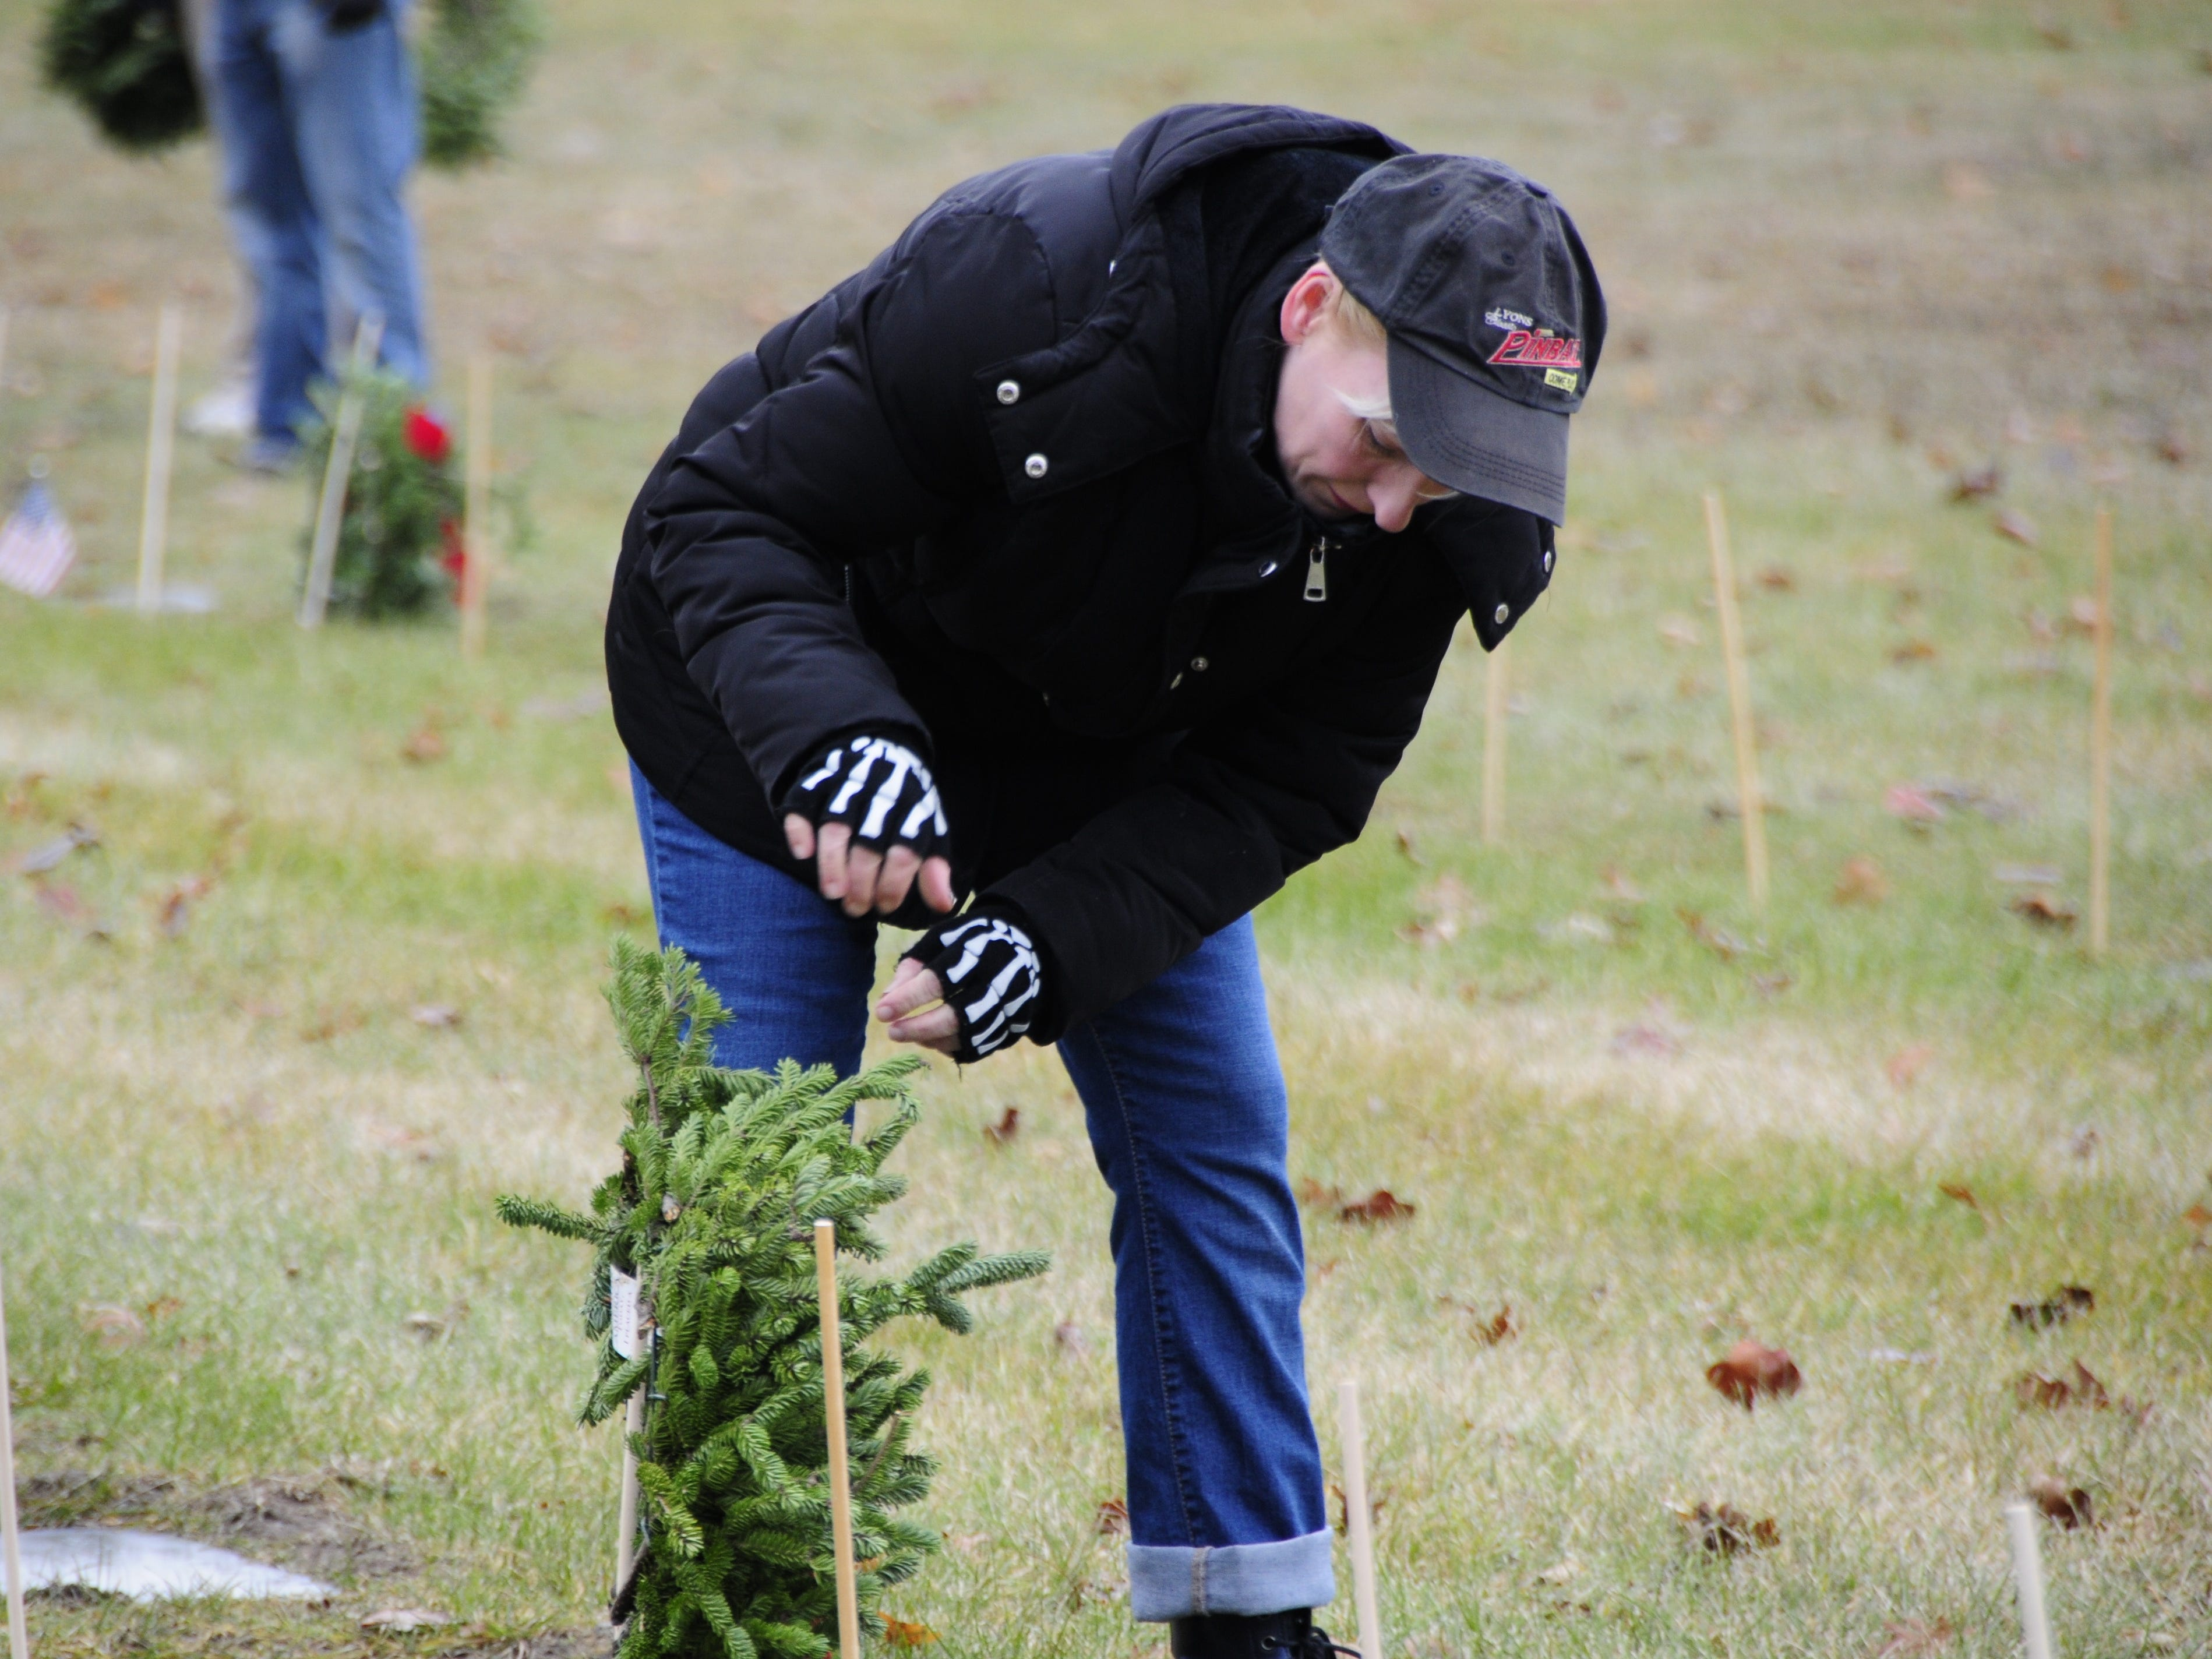 Heather Scholfield places a wreath during Wreaths Across America on Saturday, Dec. 15, 2018 at St. Clair County Allied Veterans Cemetery in Port Huron.